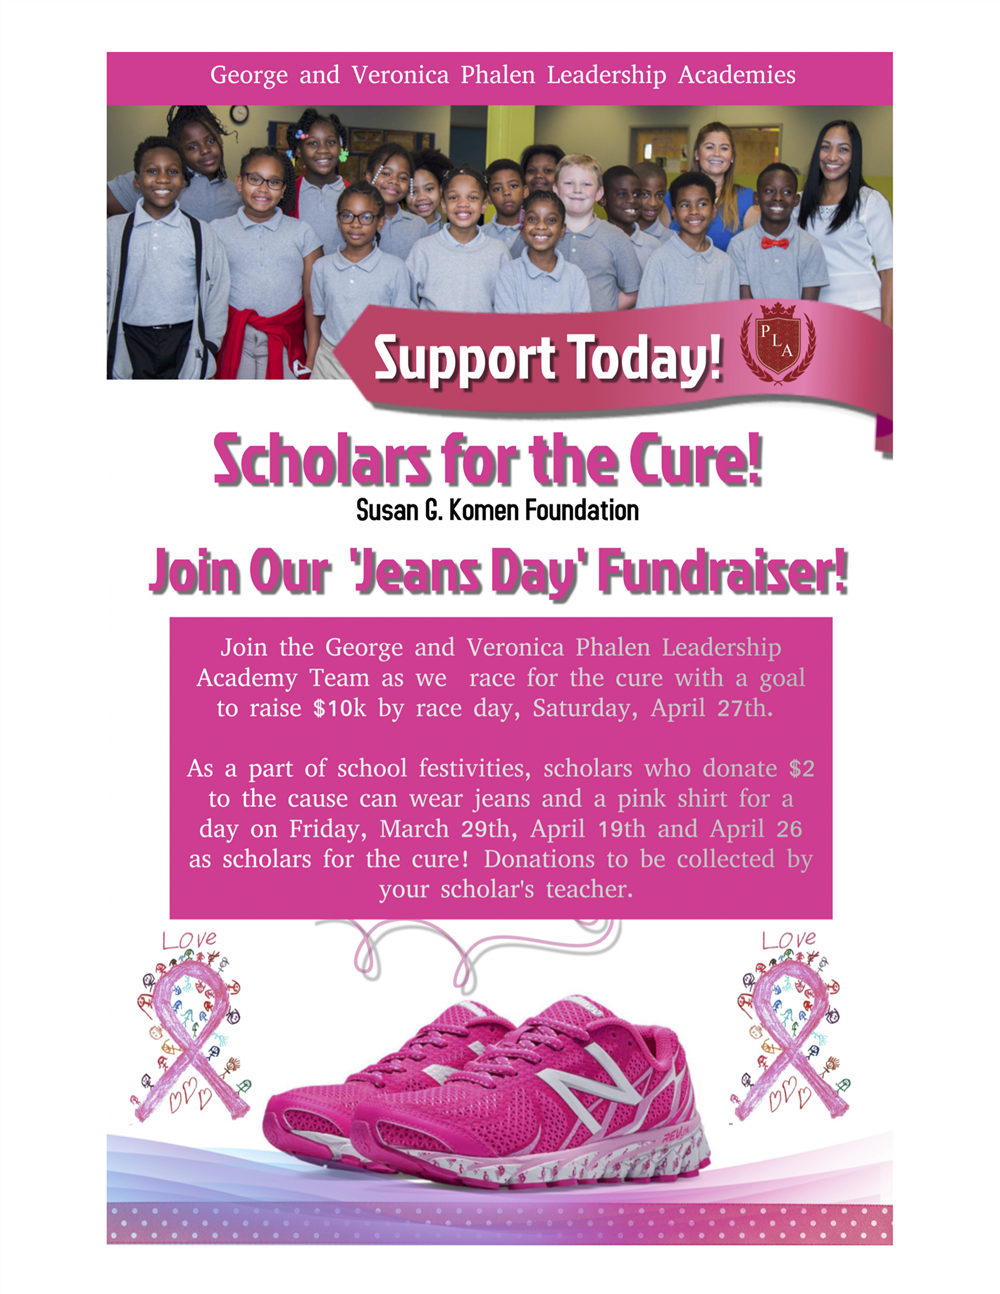 Scholars for the Cure! Join our Jeans Day Fundraiser. Scholars donate $2 to wear jeans and a pink shirt for the day.